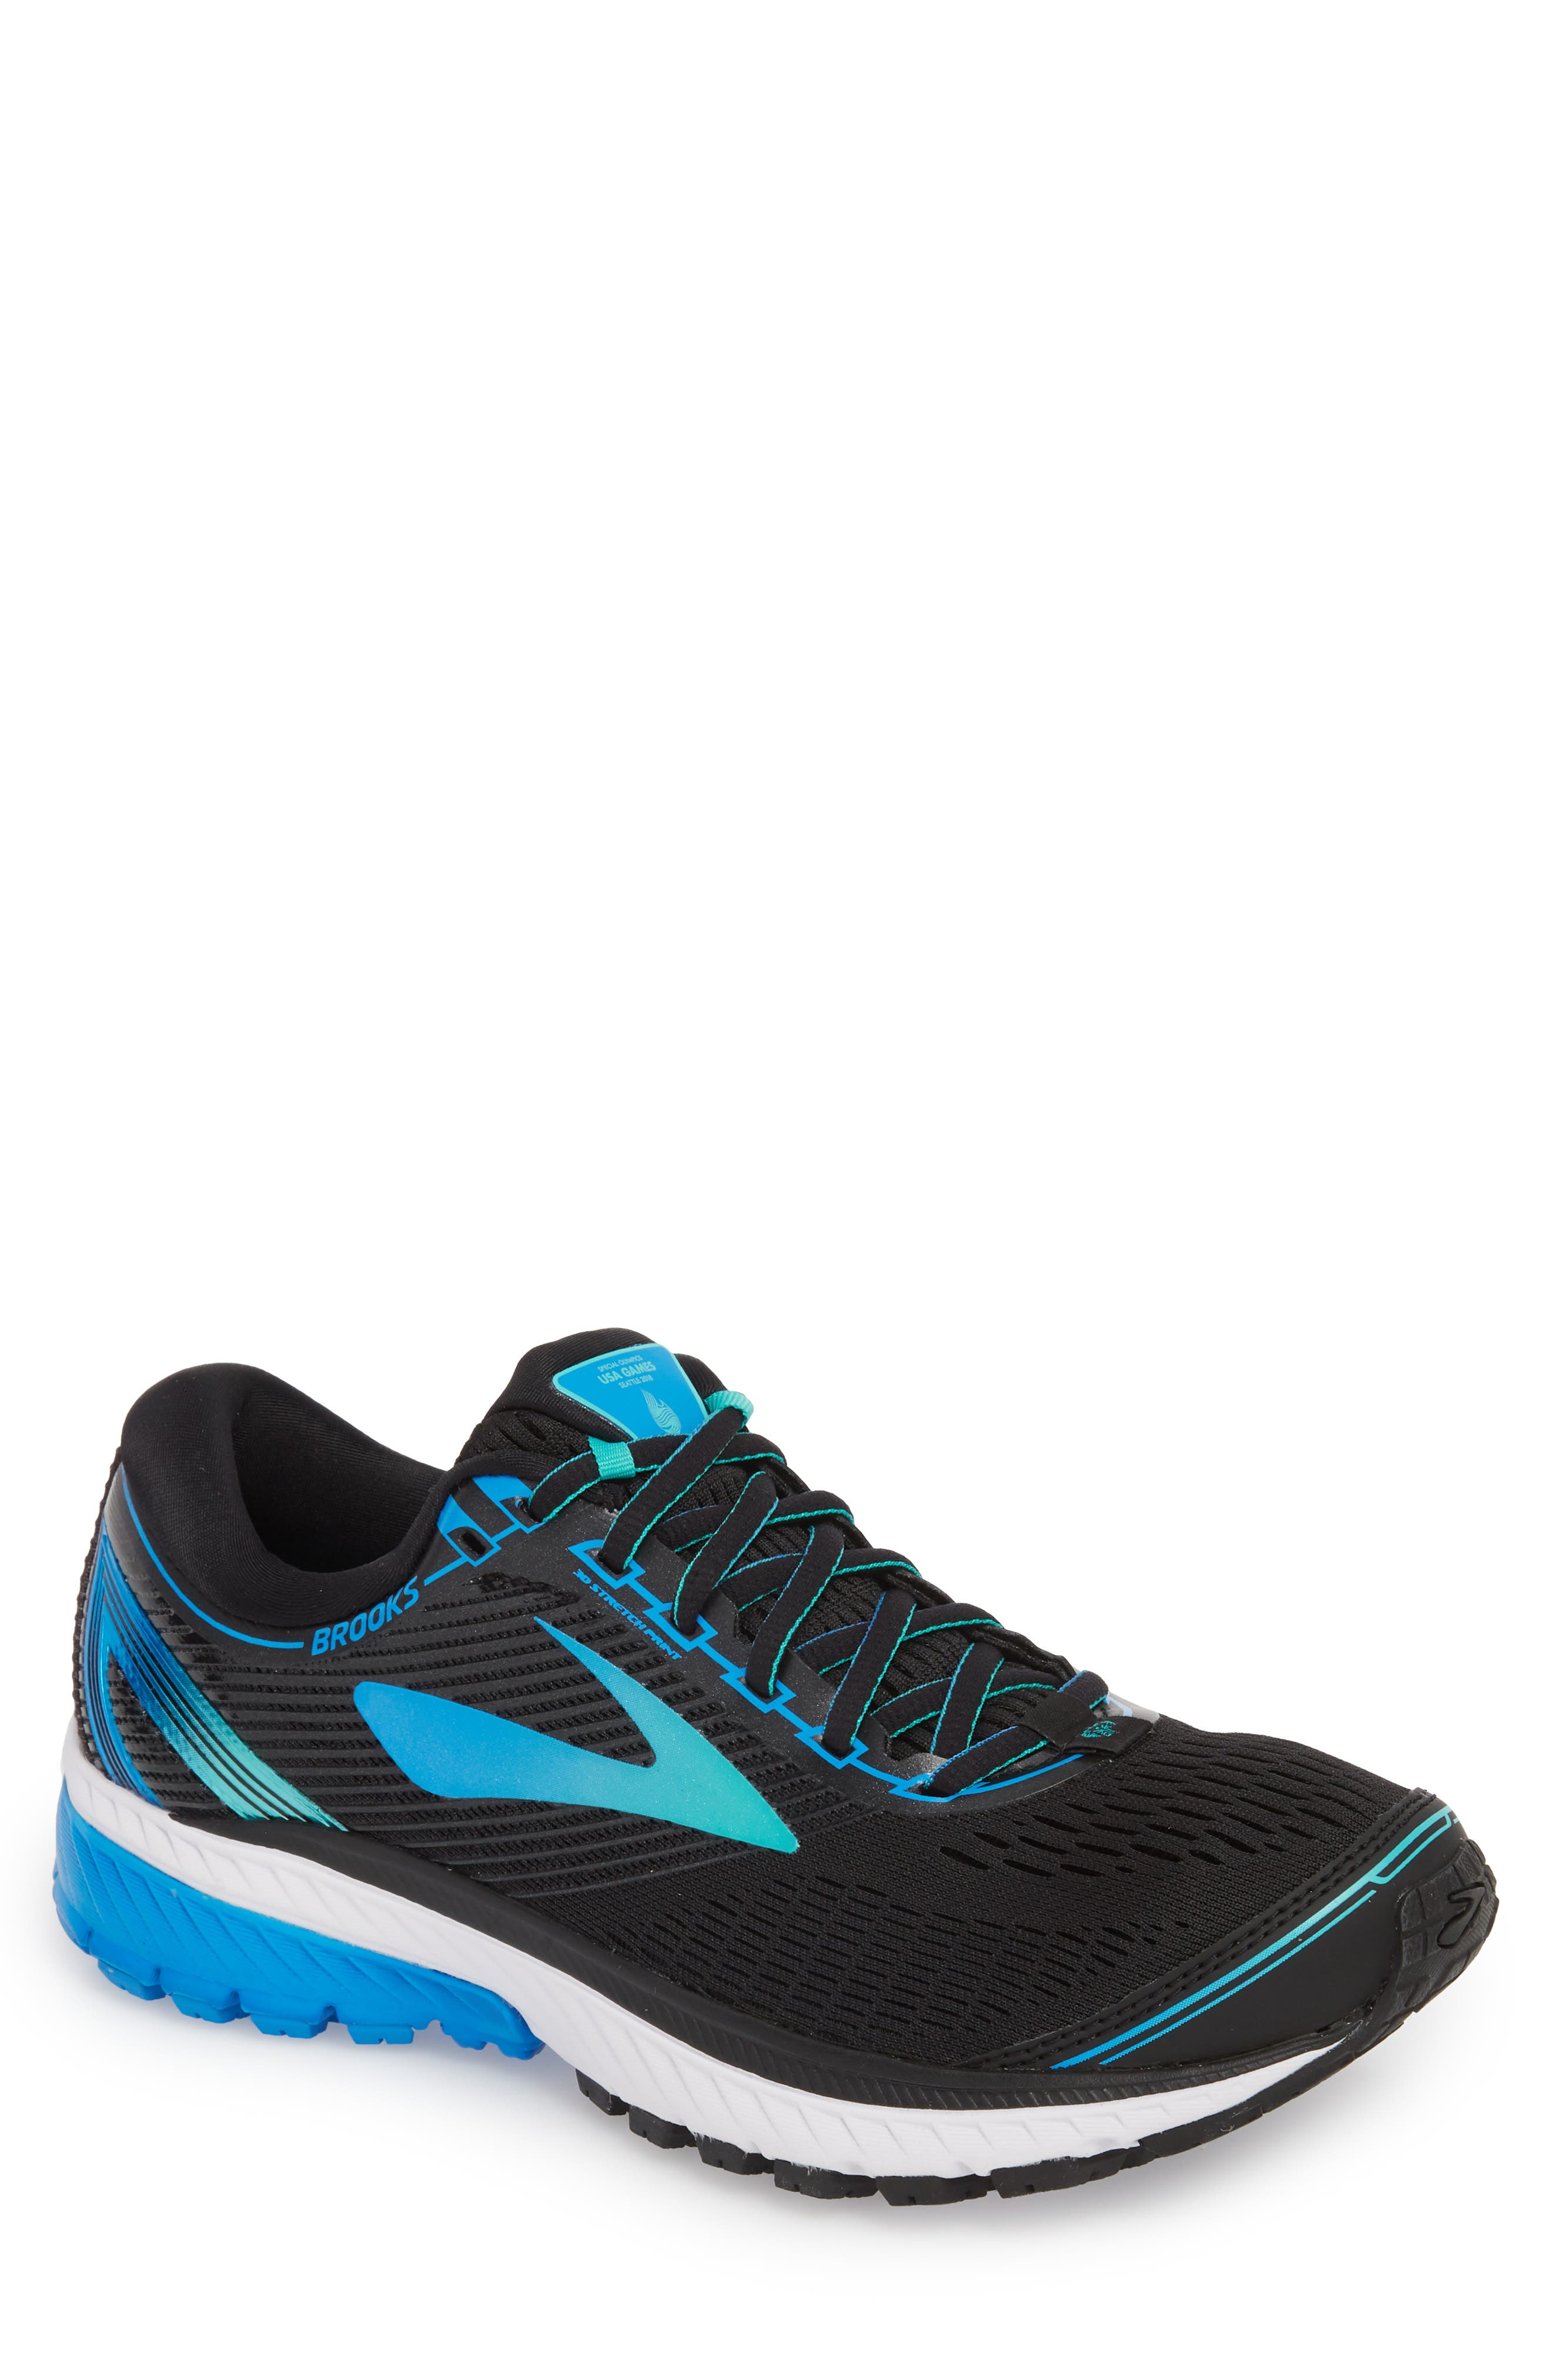 Ghost 10 Running Shoe,                         Main,                         color, 007